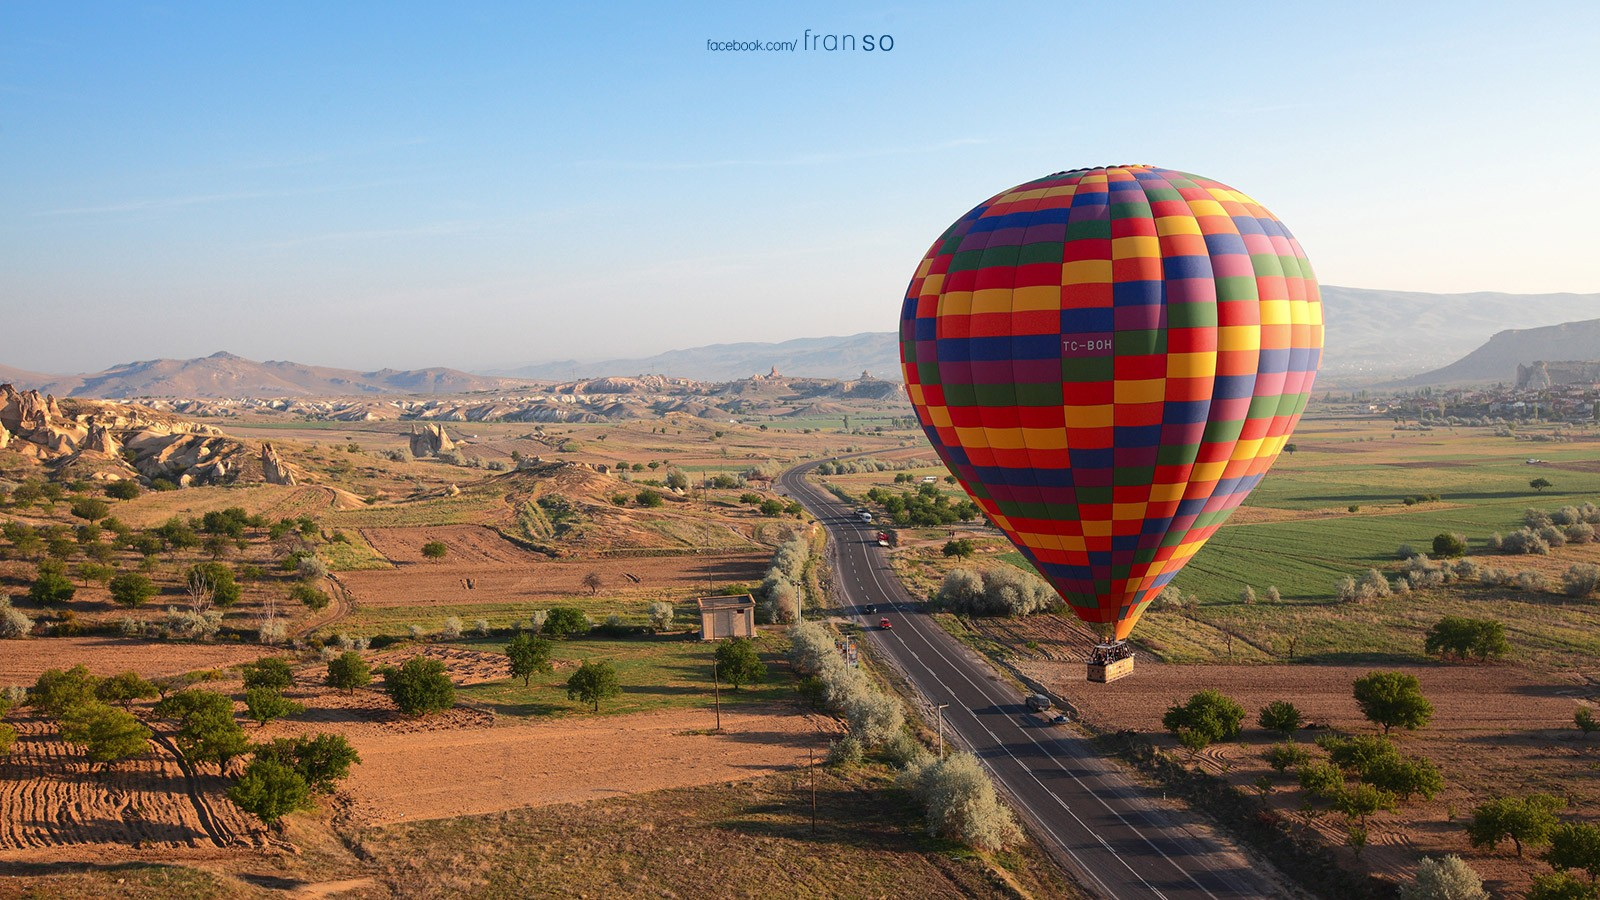 Landscape | Overseas | Hot Air Balloon | Cappadocia, Turkey